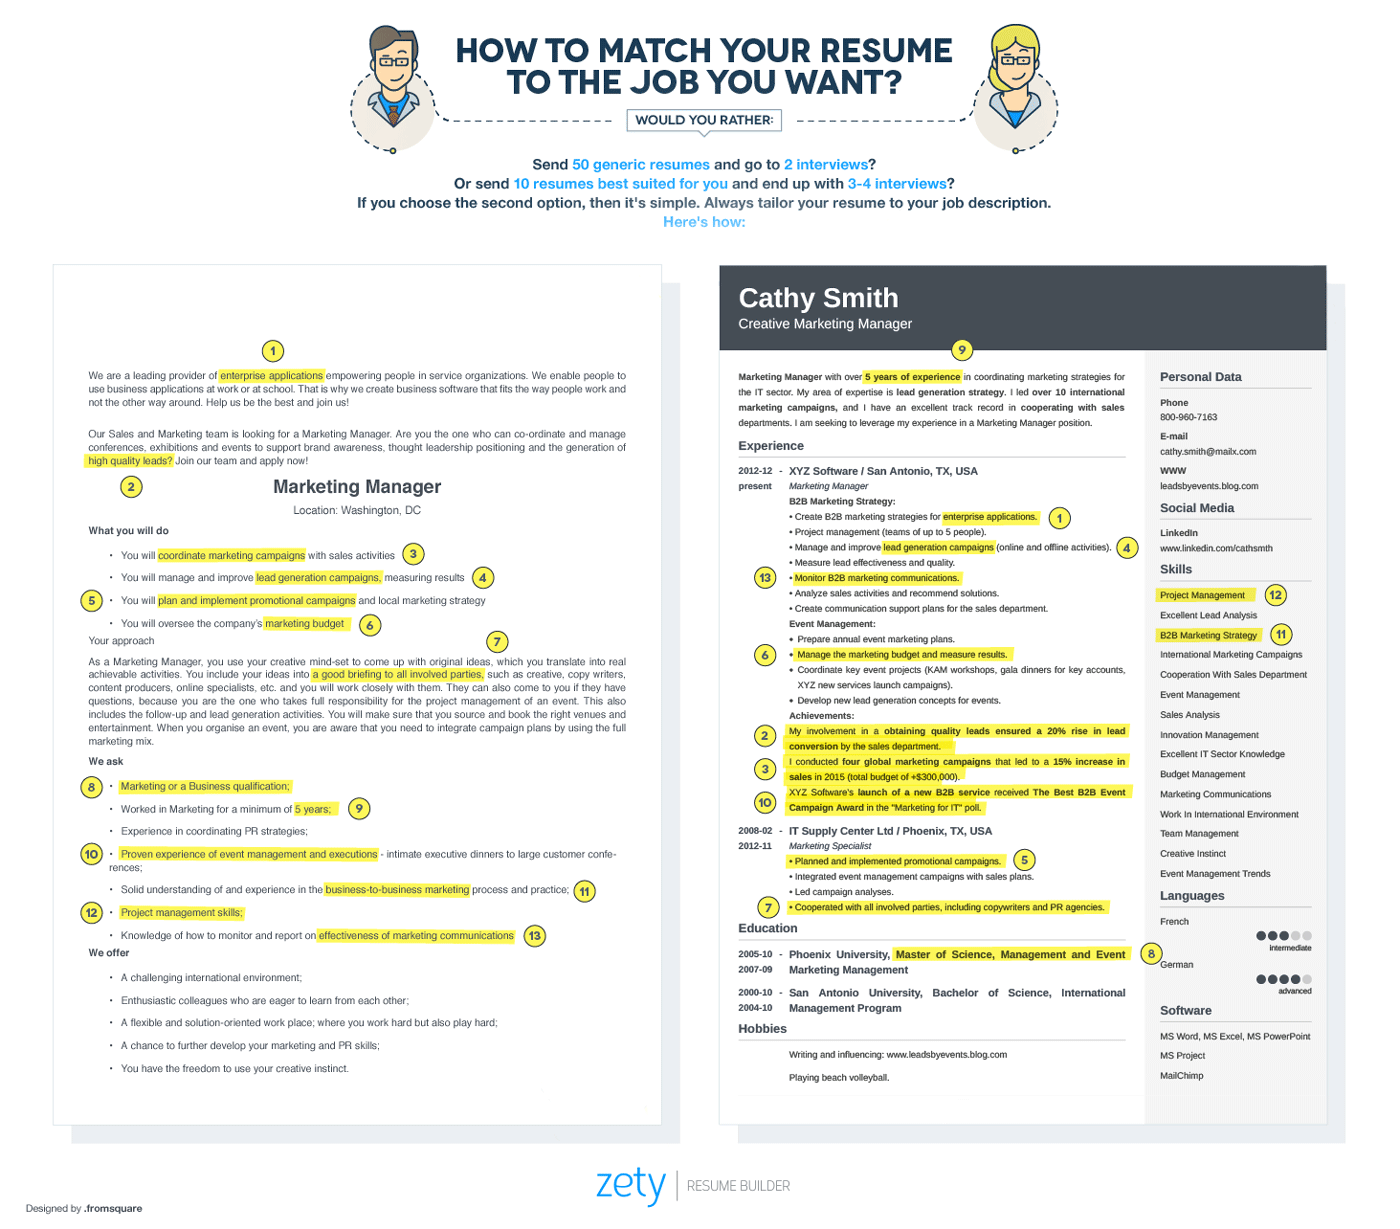 how to tailor a resume to the job description